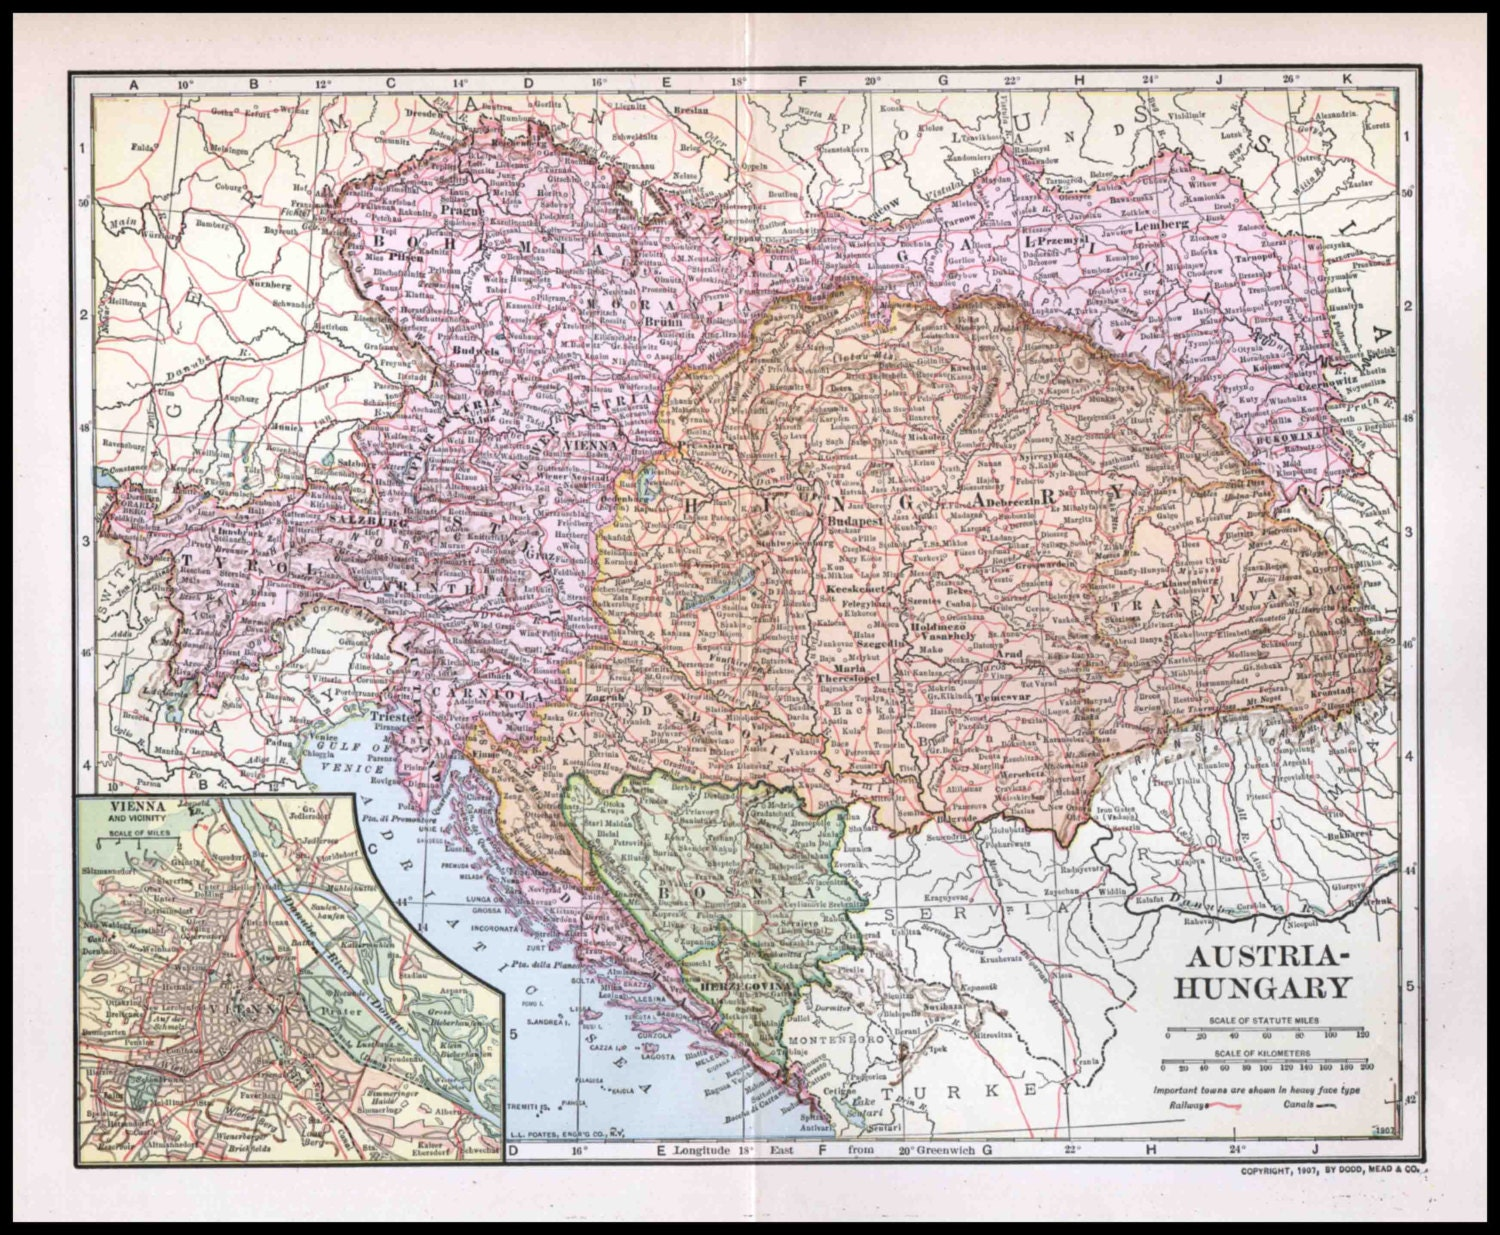 map of austria hungary 1900 1907 with Austria Hungary Antique Map 1907 Dodd on The Austro Hungarian Empire In 1897 besides India Maps as well Austria Hungary Antique Map 1907 Dodd moreover File Yuzhakov Big Encyclopedia Map of Austria Hungary additionally Literacy Rate In Austria Hungary 1880.